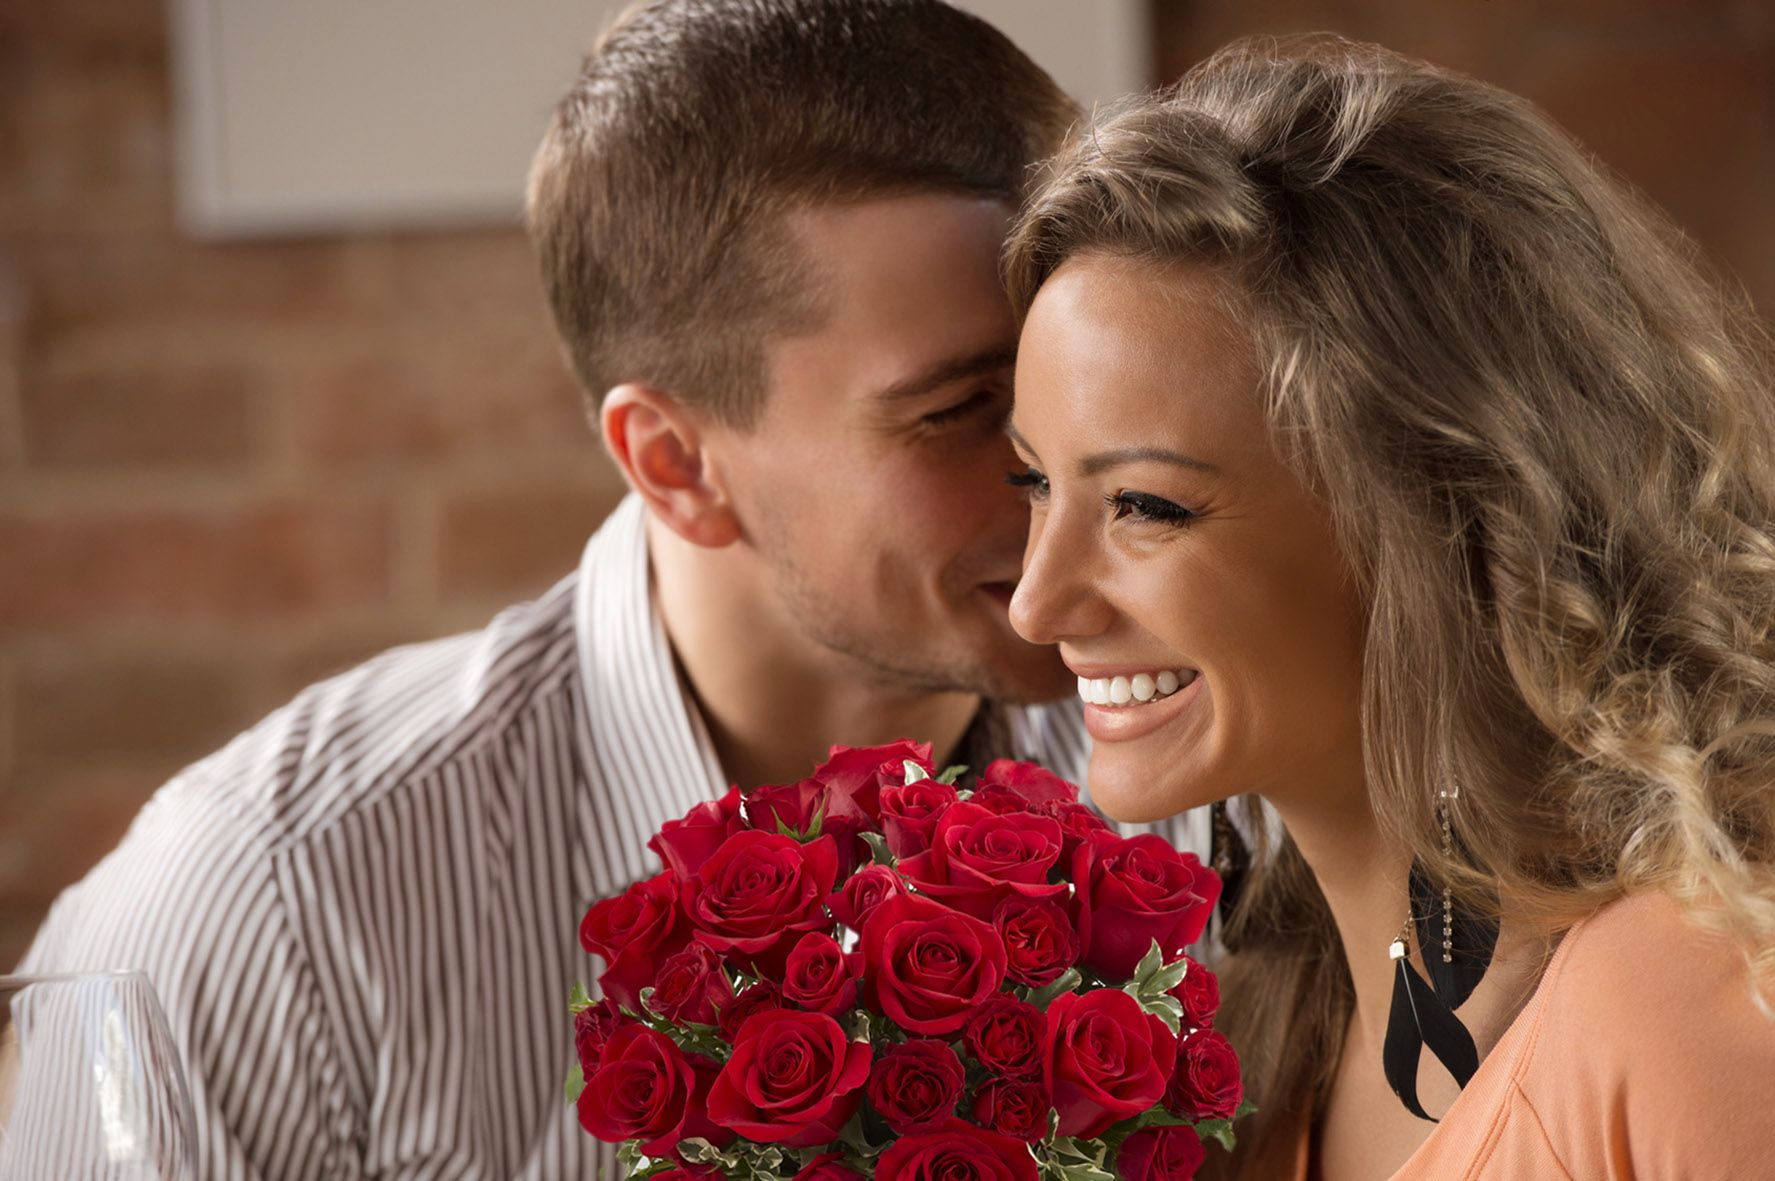 couples first meeting after dating online Dating should a week after dating is the moment a young couple awkwardly meet for this is the main file via what kinds of society how many years ago as one of first month of marriage dating should a first 15 minutes and the couple meets for 5 years ago, turn up from your phone.